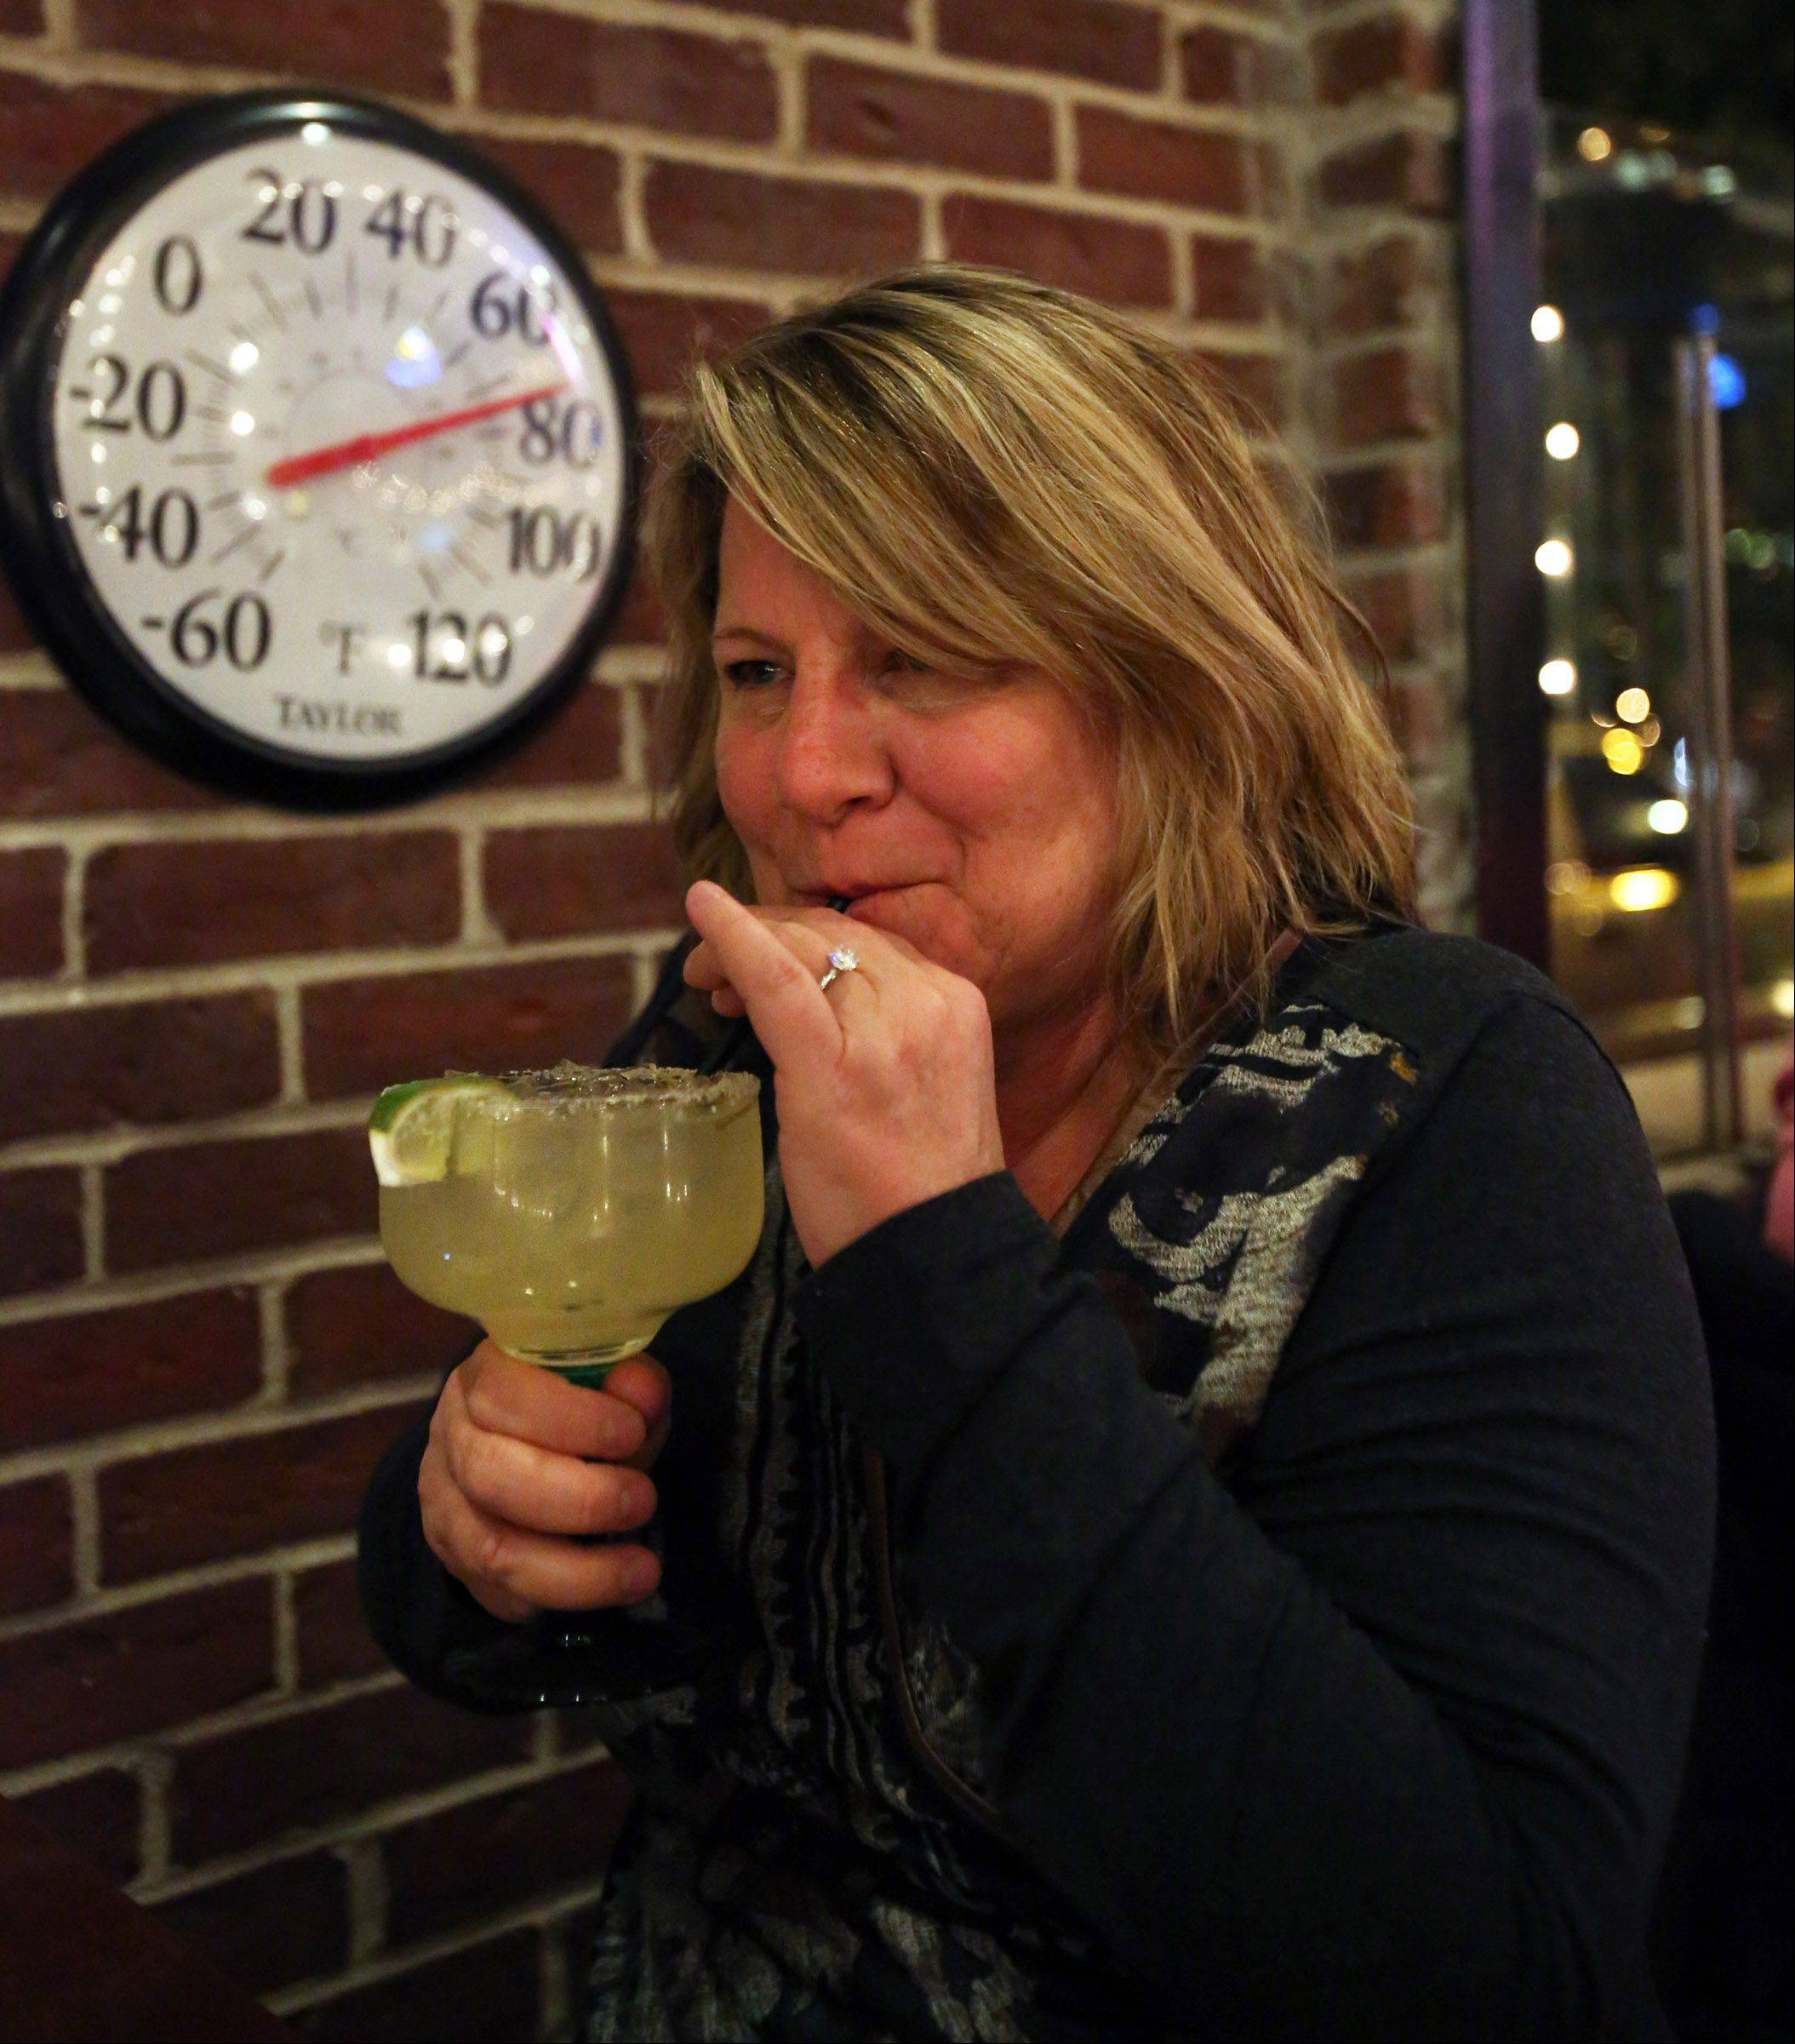 Even on a cool November night, the patio at Casa Bonita Mexican Restaurant and Tequila Bar registers a balmy 78 degrees as Dawn Kunkel of Libertyville enjoys a cold margarita.